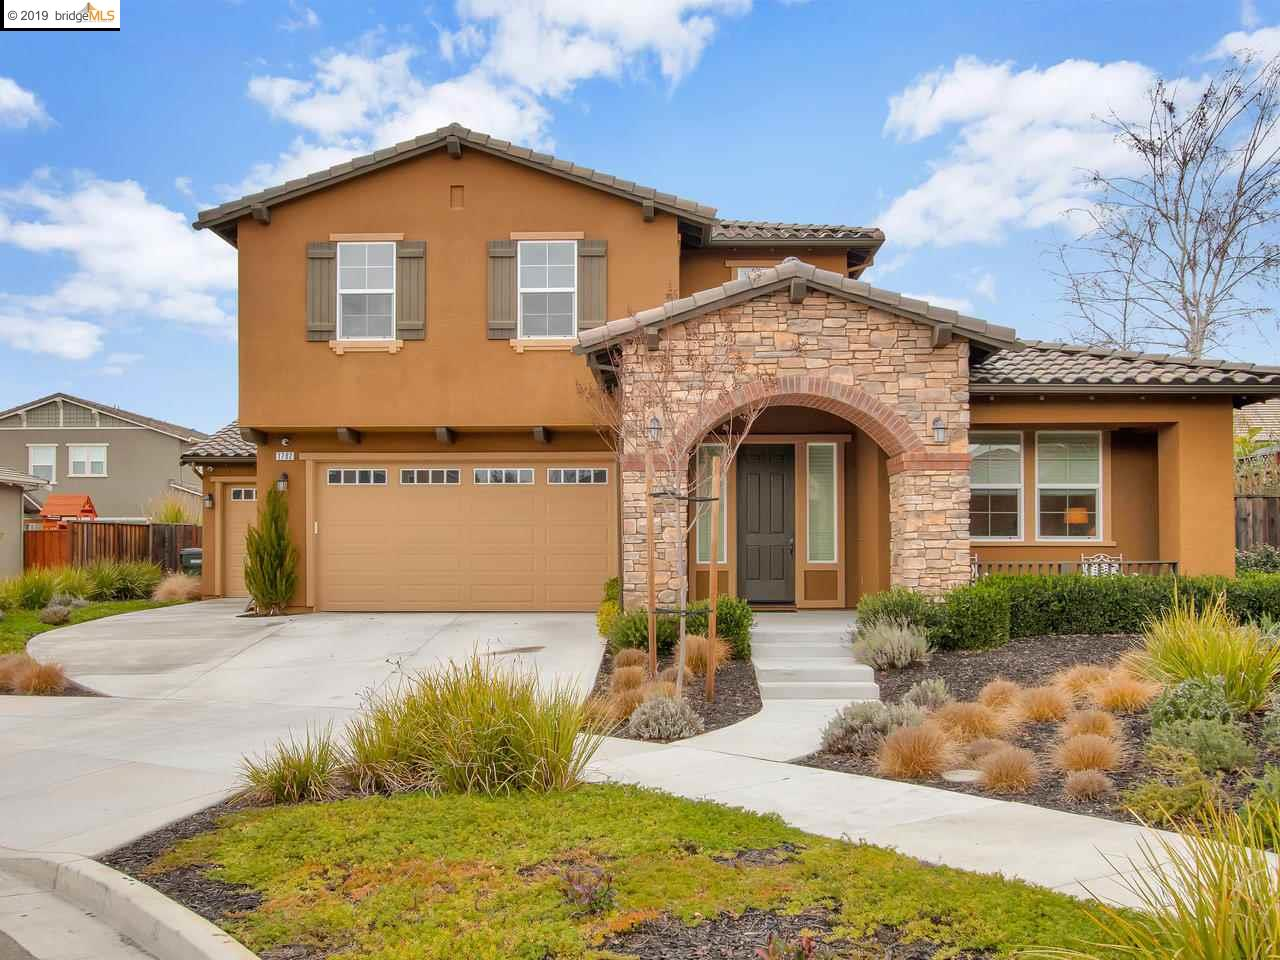 """Amazing Four Bedroom, Three Bath home. Located in South Livermore. Vinsanto Development. Built in 2016. 2824 Sq. Ft. 9,144 Sq. Ft. homesite.  Owned Solar System. Energy efficient home. Highly upgraded. Upgrades include flooring, granite counters & stainless steel appliances. 42"""" built-in refrigerator. Large  landscaped rear yard with stamped concrete patio, turf, flowers, and fruit trees.  Apple, lemon, tangerine, olive and avocado trees. Beautifully landscaped front yard at the end of a court. Three car garage. Close to freeways, schools and shopping. Move-in Ready. Don't miss this opportunity to live in one of the premier neighborhoods of Livermore.  Offer deadline January 20, 2019 at 12:00pm."""